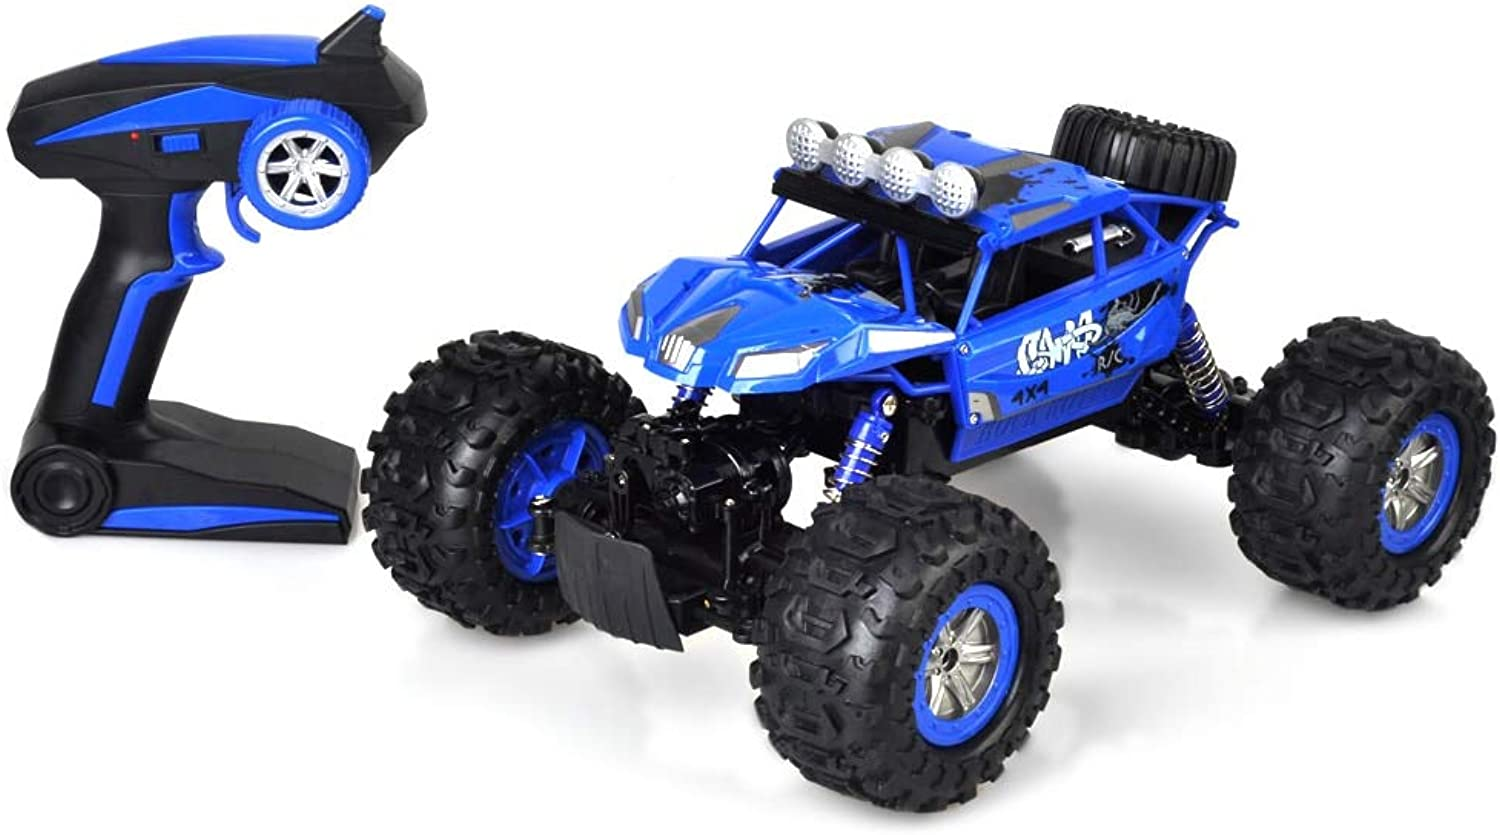 Generic s RC Cars 2.4G 1 12 Waterproof Amphibious RC OffRoad Crawler Car 4 WD IPX4 50m Control Distance Remote Control Car Gift bluee